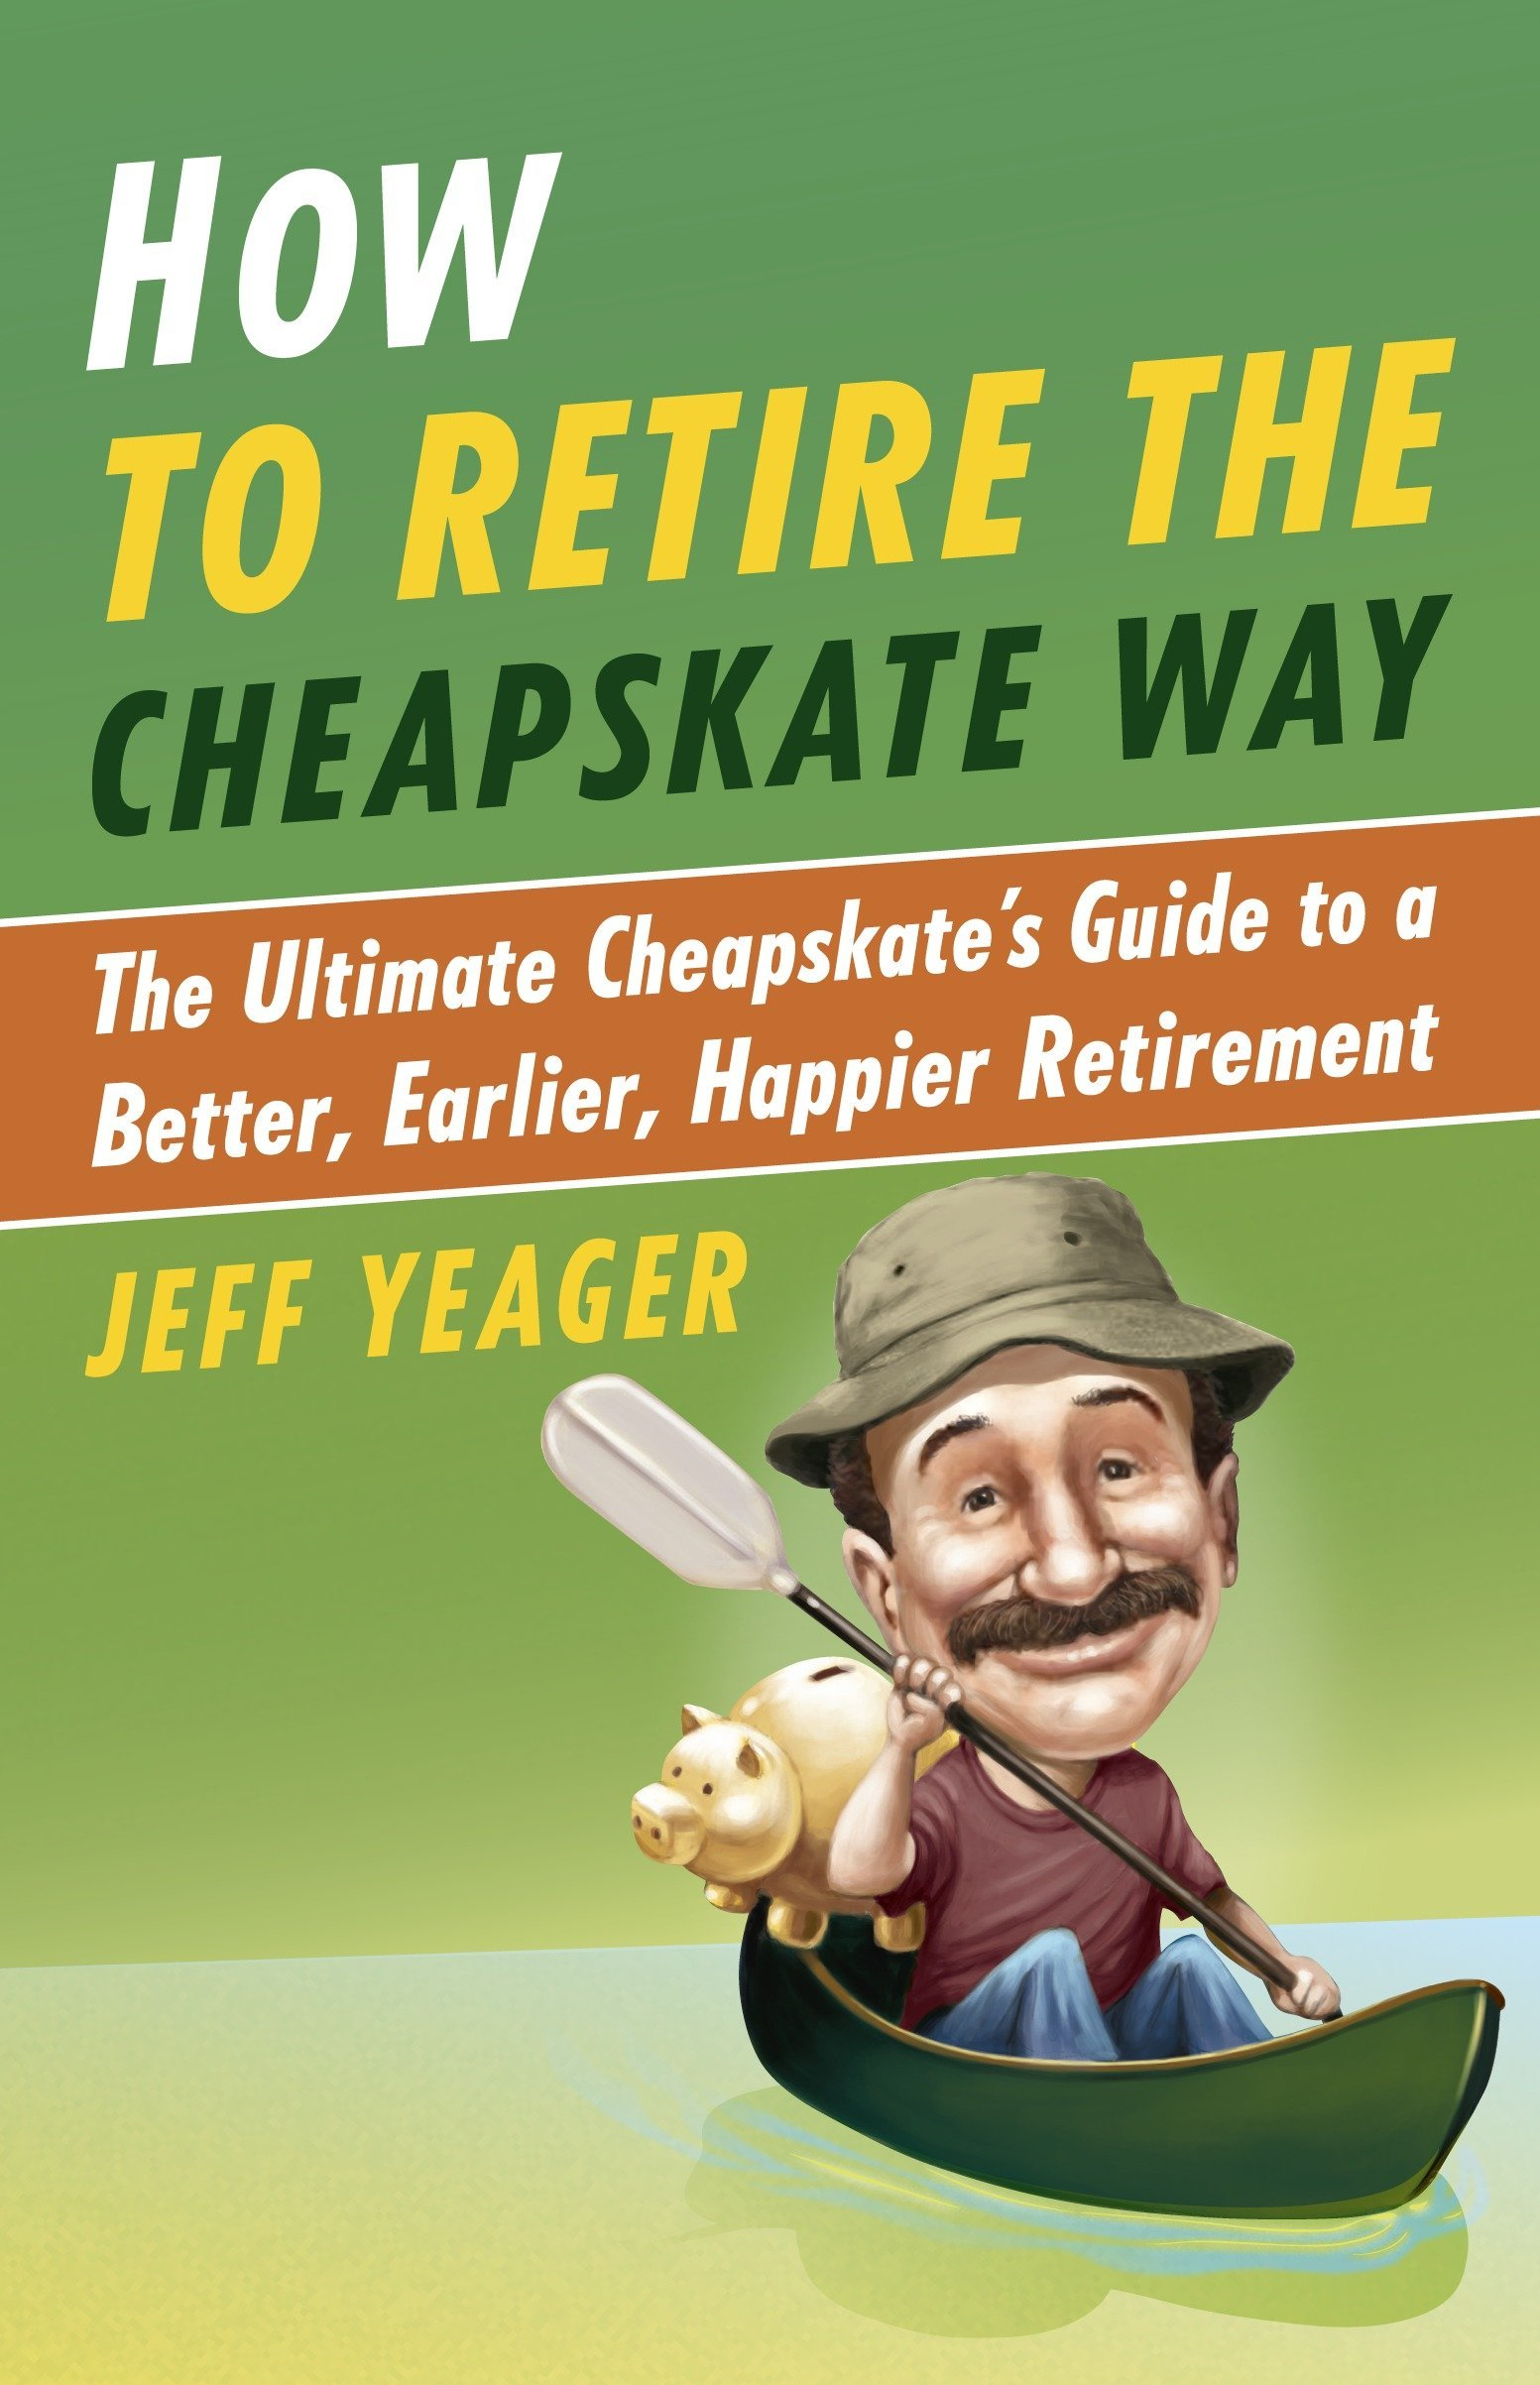 How to Retire the Cheapskate Way: The Ultimate Cheapskate's Guide to a  Better, Earlier, Happier Retirement: Jeff Yeager: 9780307956422:  Amazon.com: Books